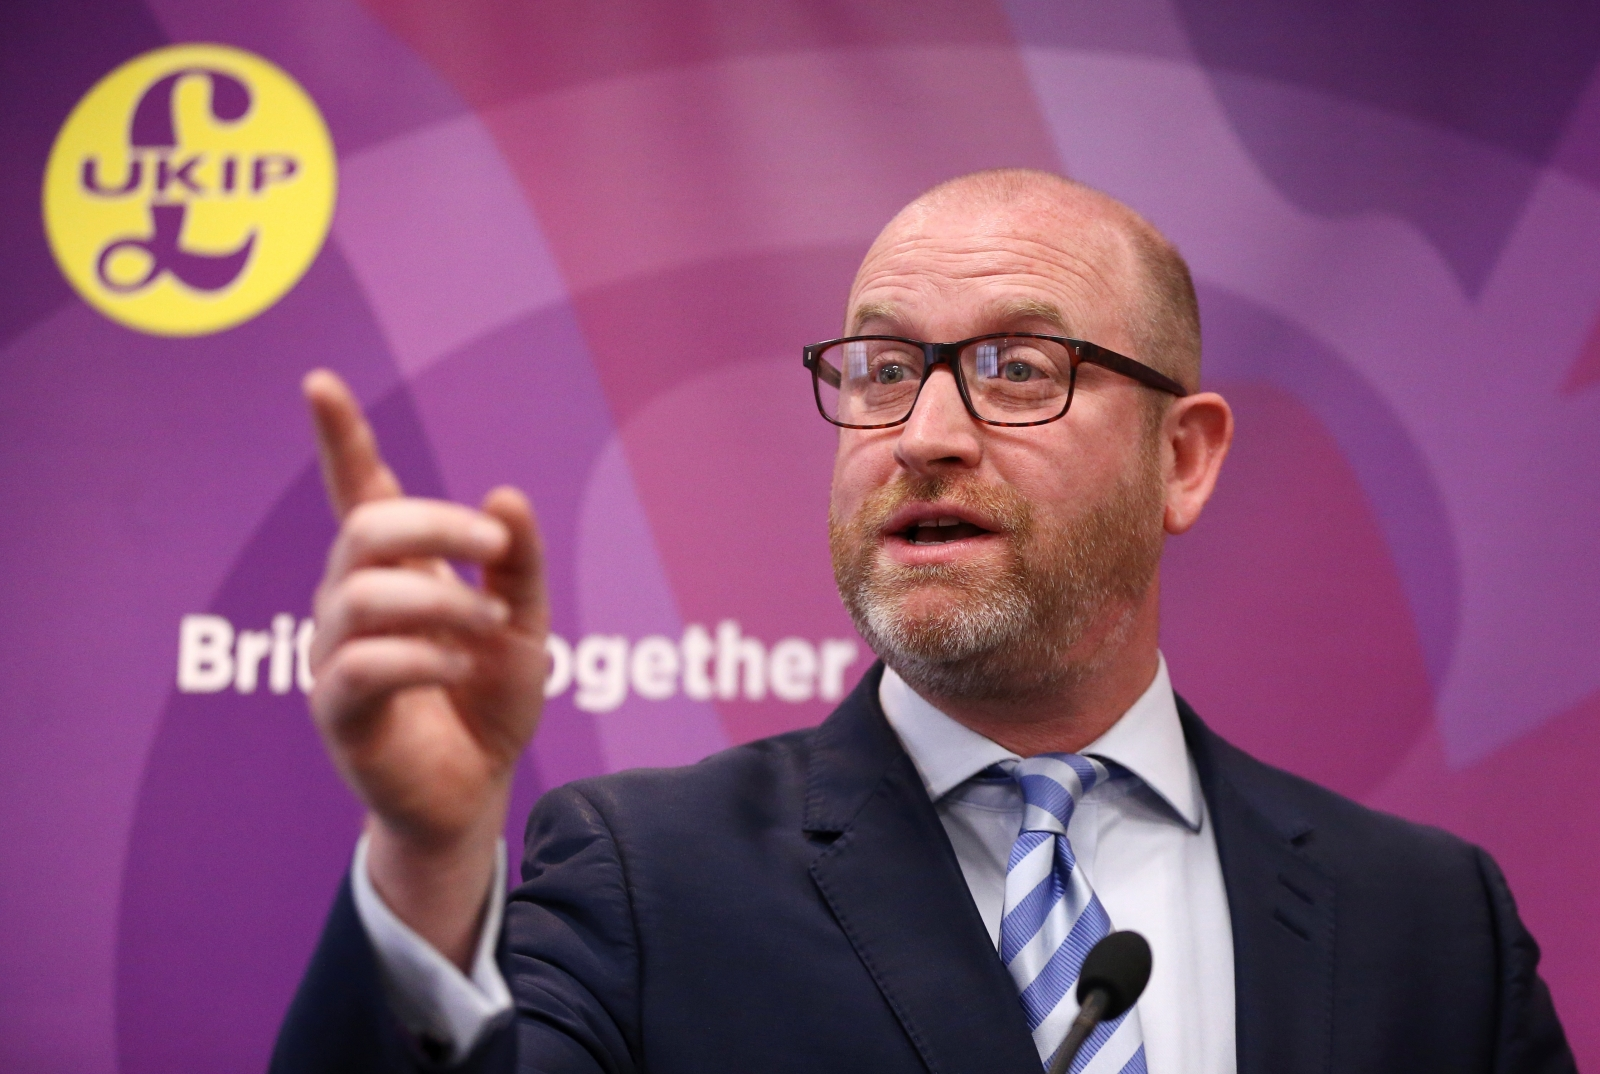 Ukip will resume election campaigning tomorrow with its manifesto launch